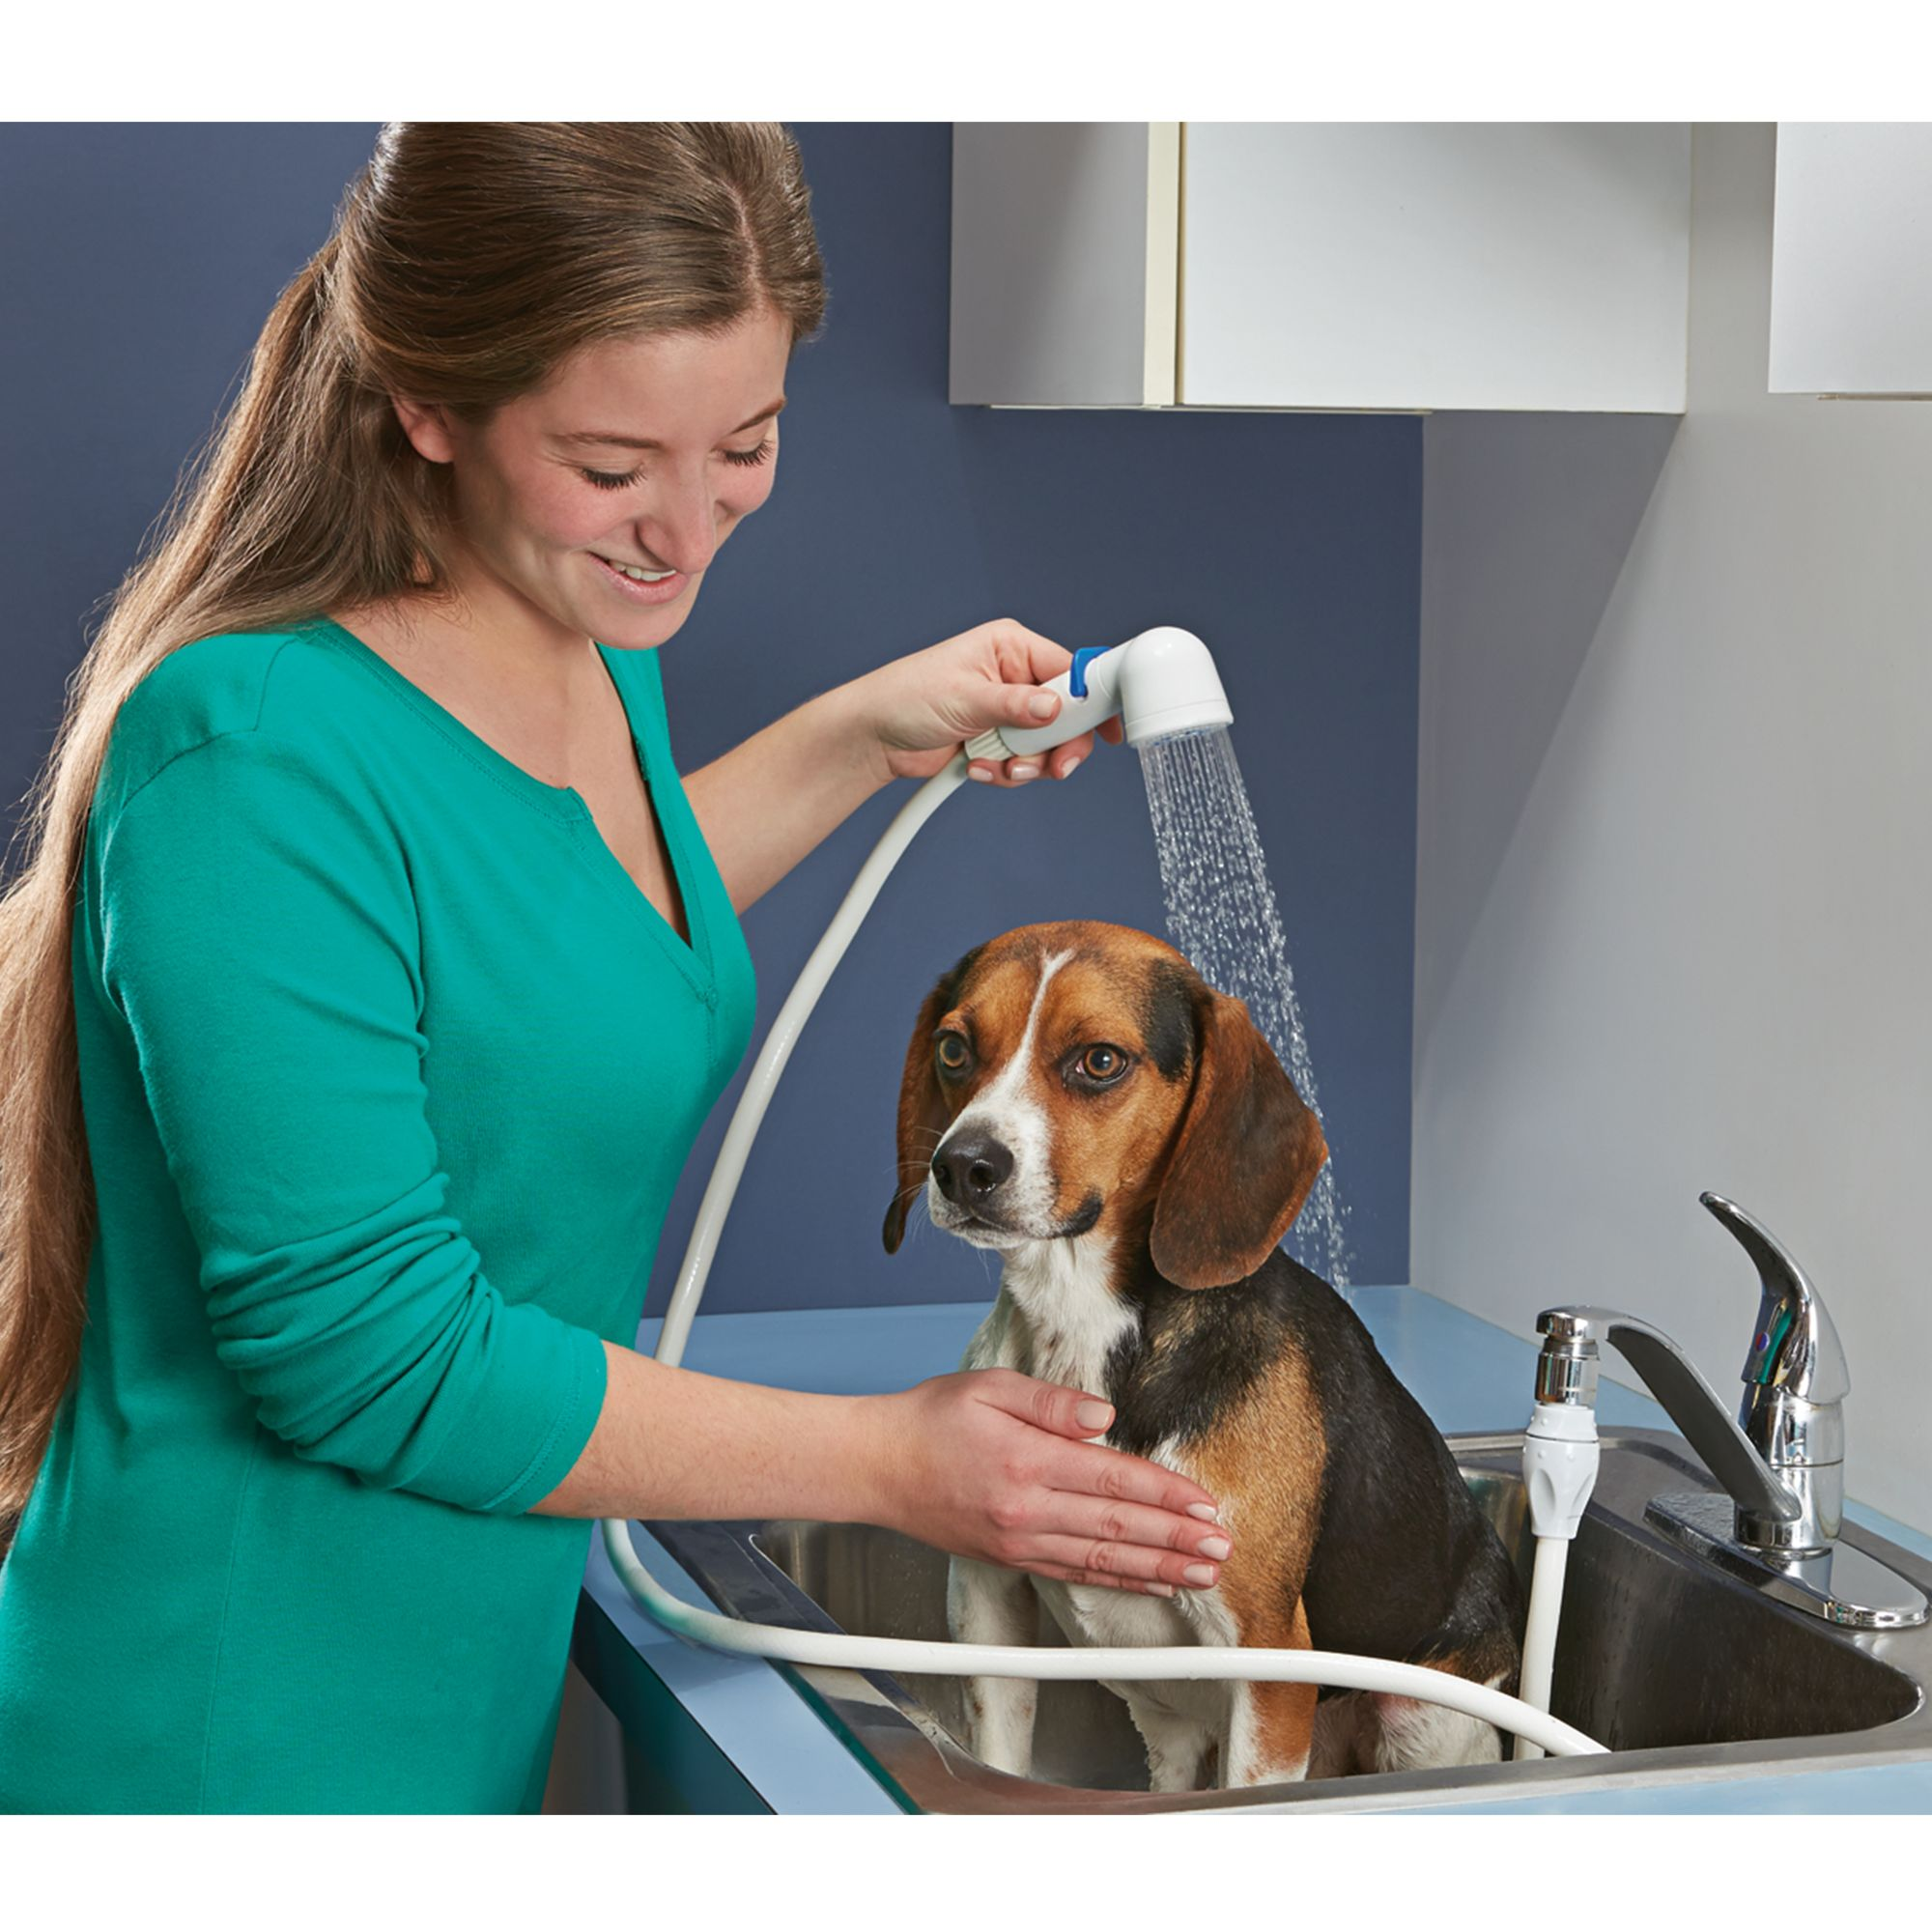 Top Paw 3 Way Faucet Pet Sprayer